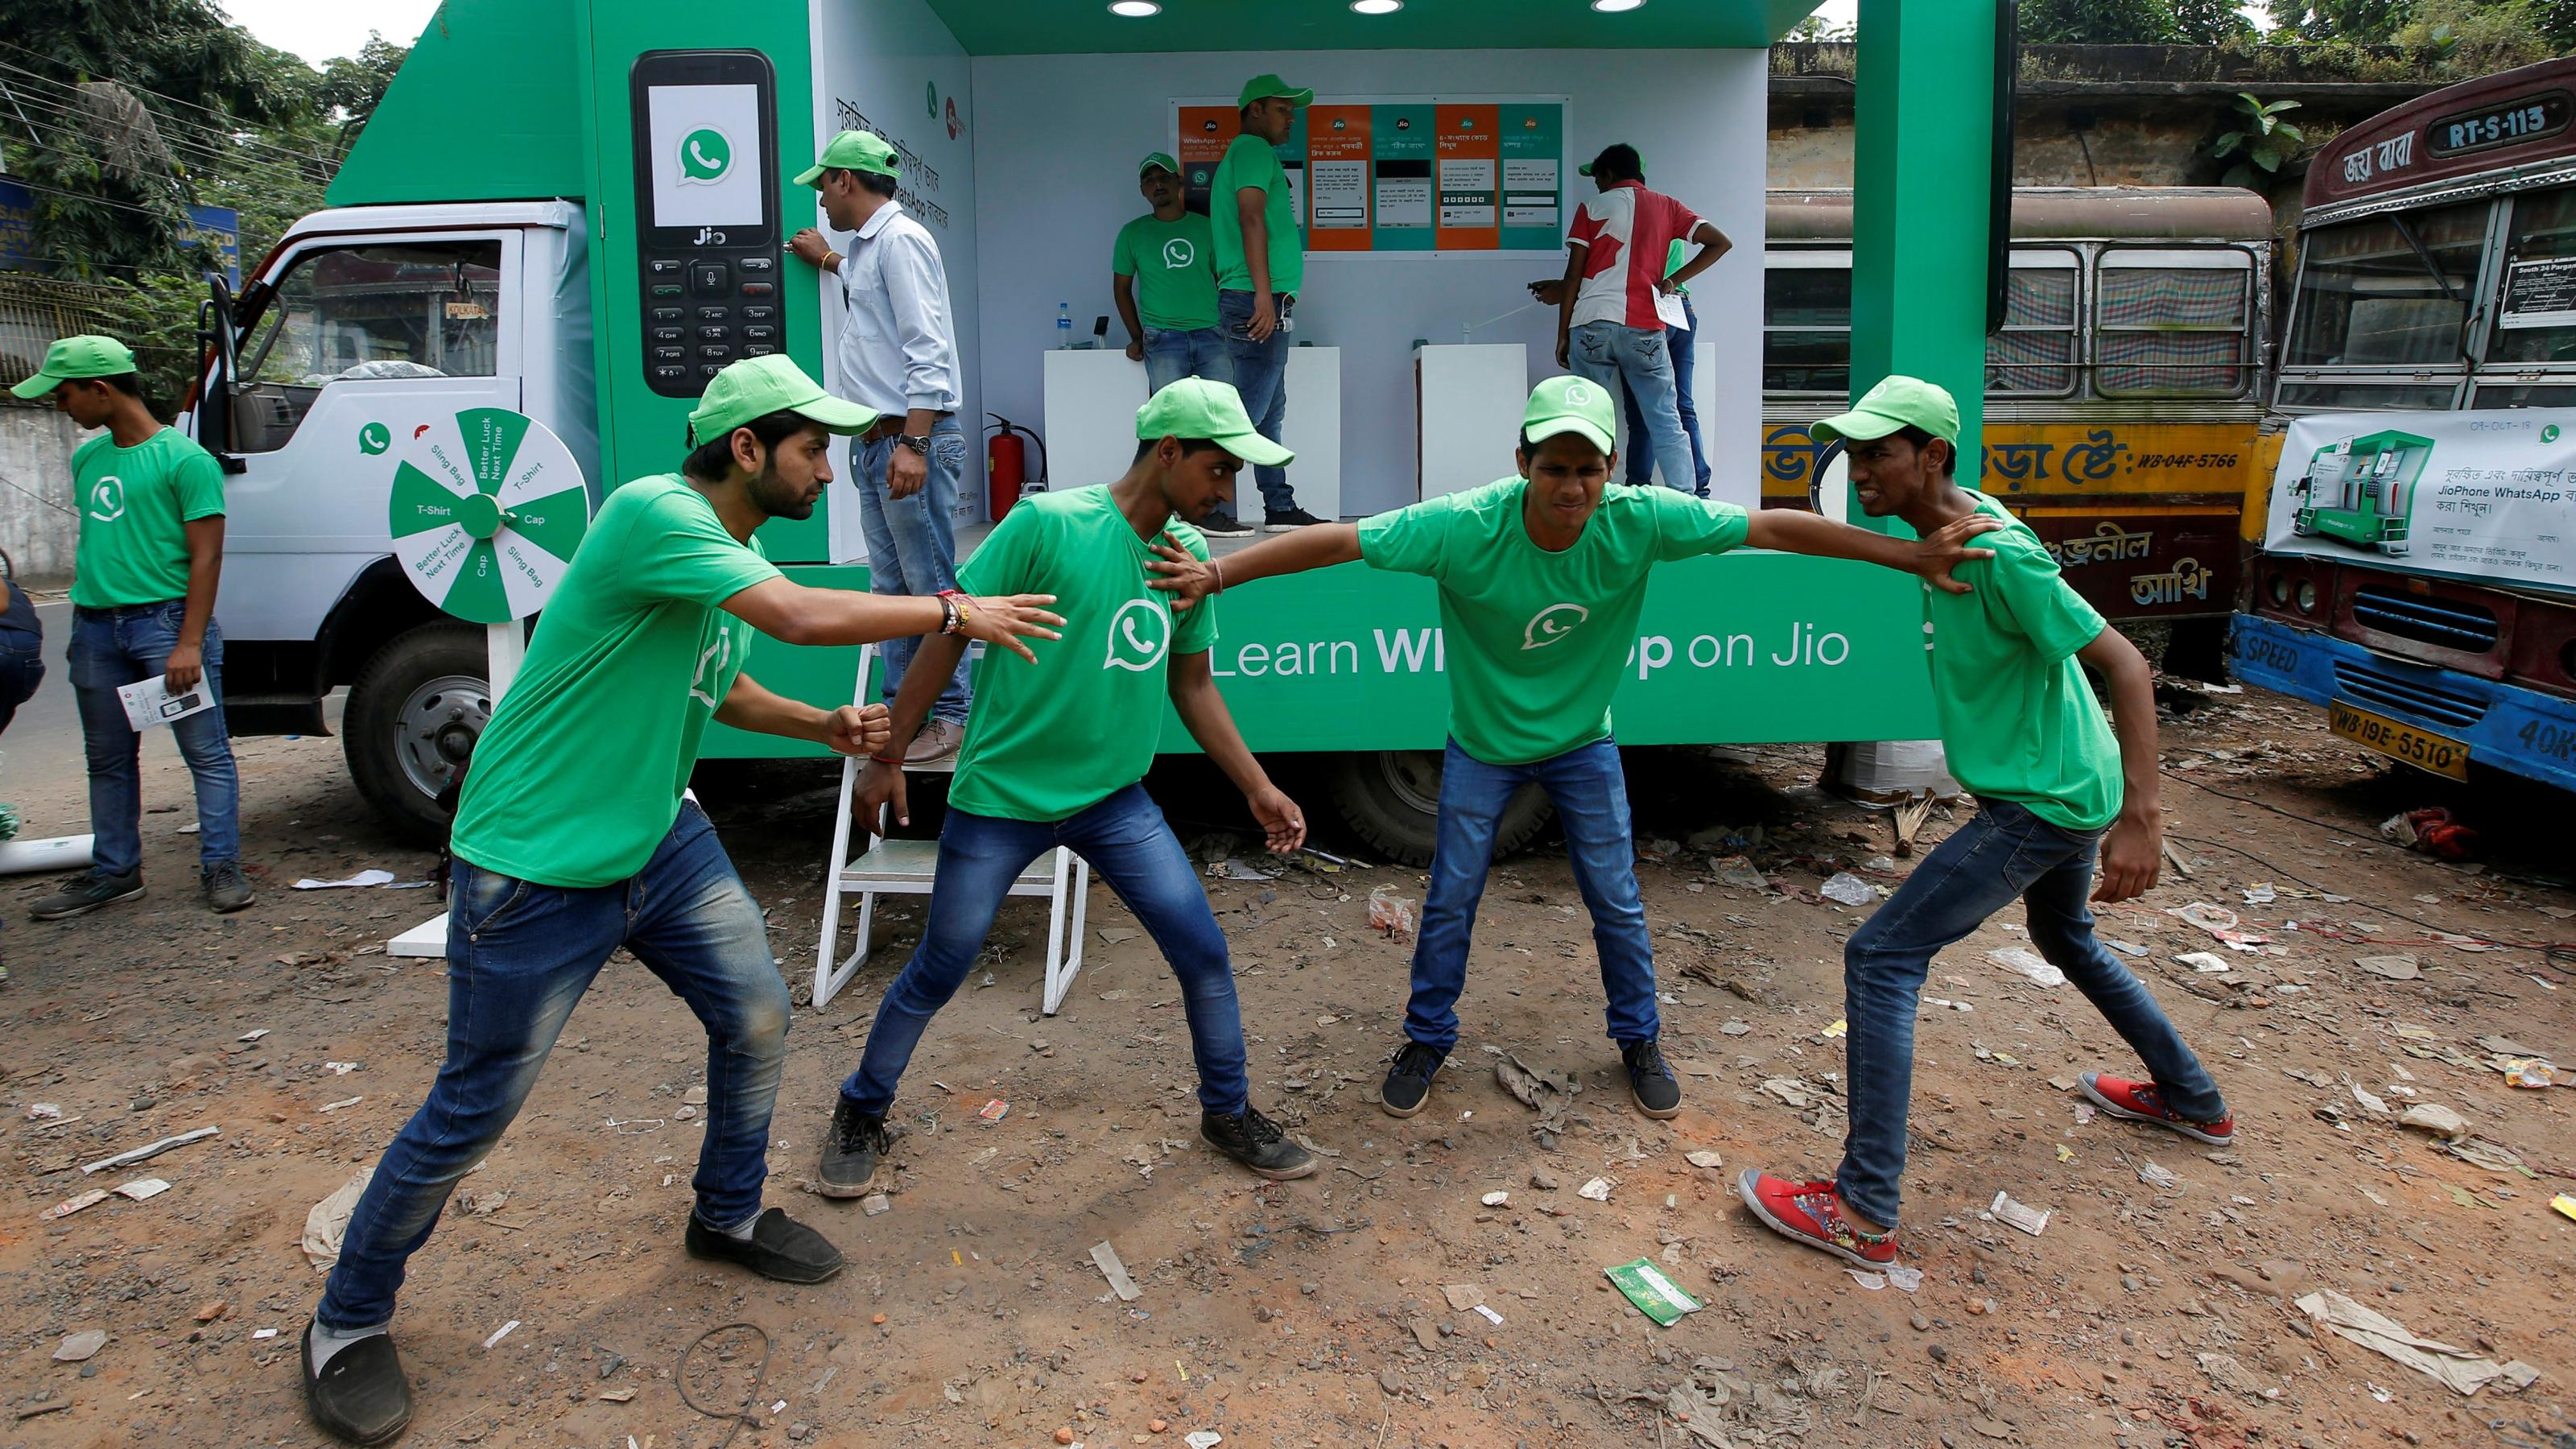 Will India's Signal fever make a dent in WhatsApp's 400 million user base?